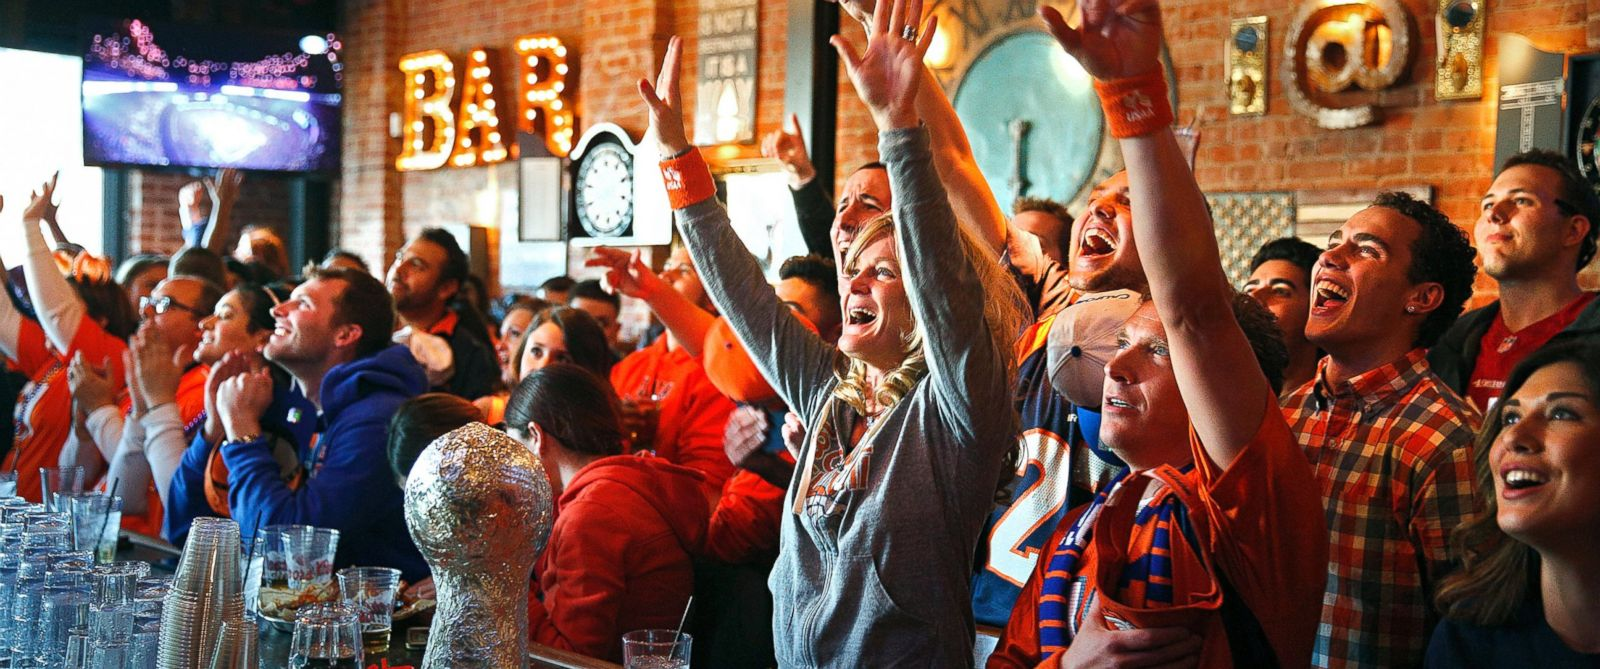 PHOTO: Denver Broncos fans cheer as their team takes the field against the Seattle Seahawks while watching the NFL Super Bowl XLVIII at the View House bar in Denver, Colo. on Feb. 2, 2014.